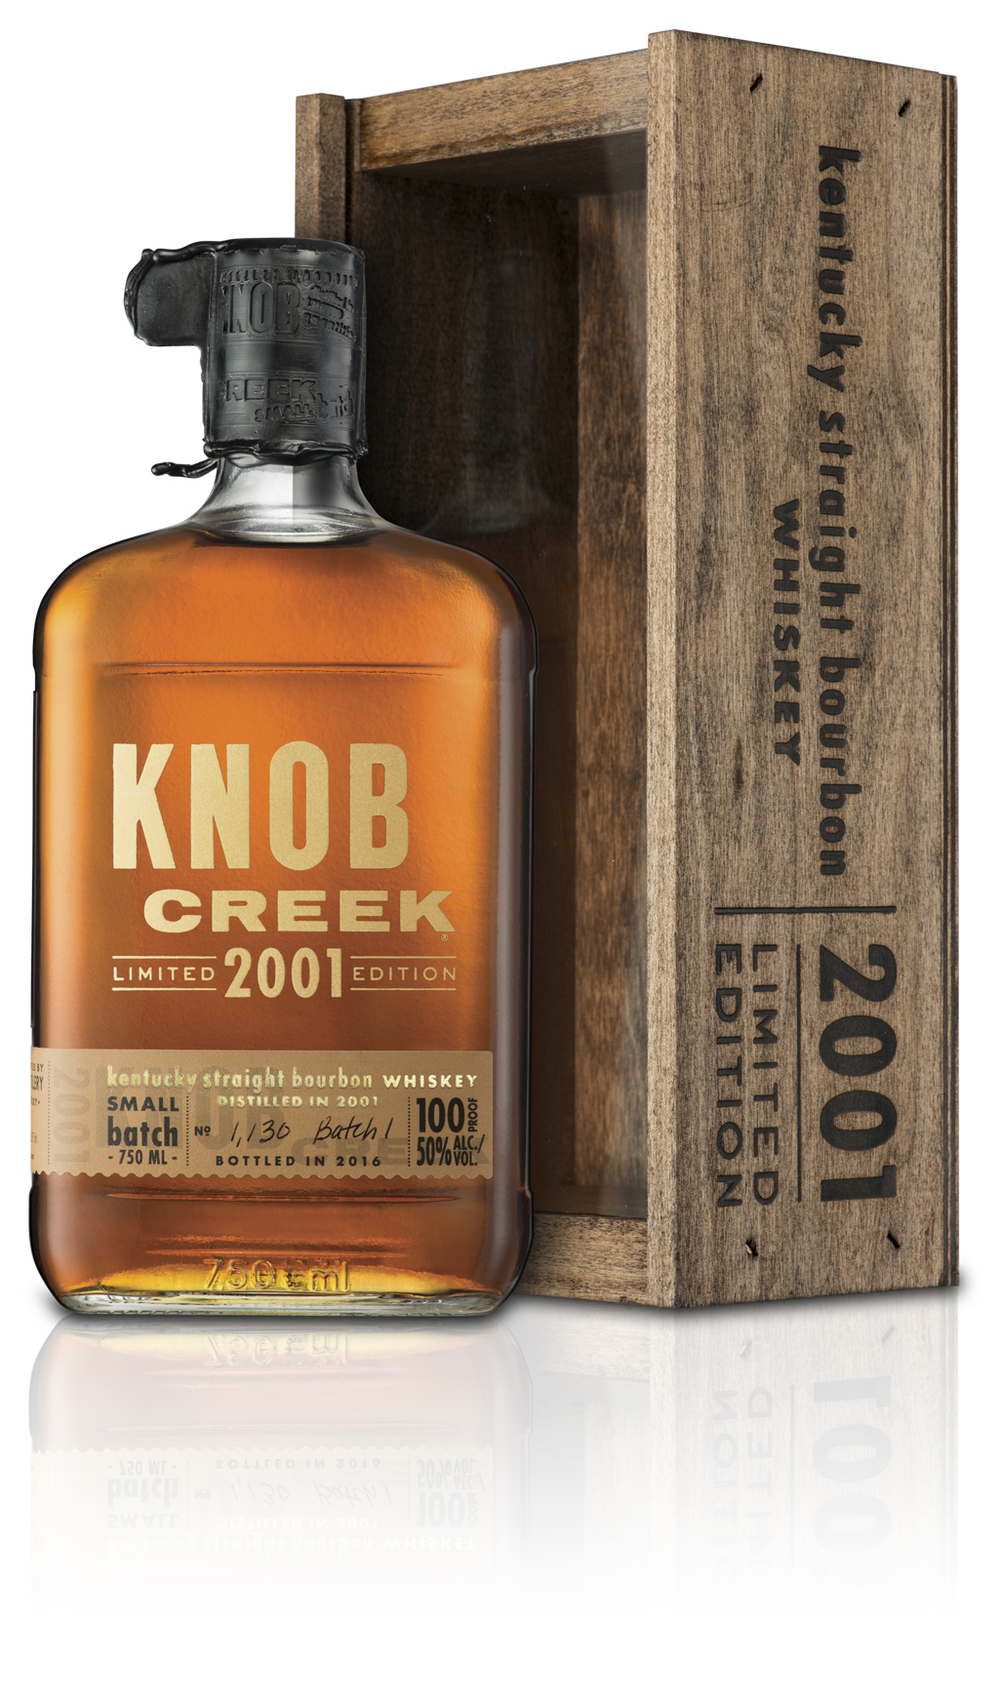 Knob Creek 2001_bottle with box.jpg